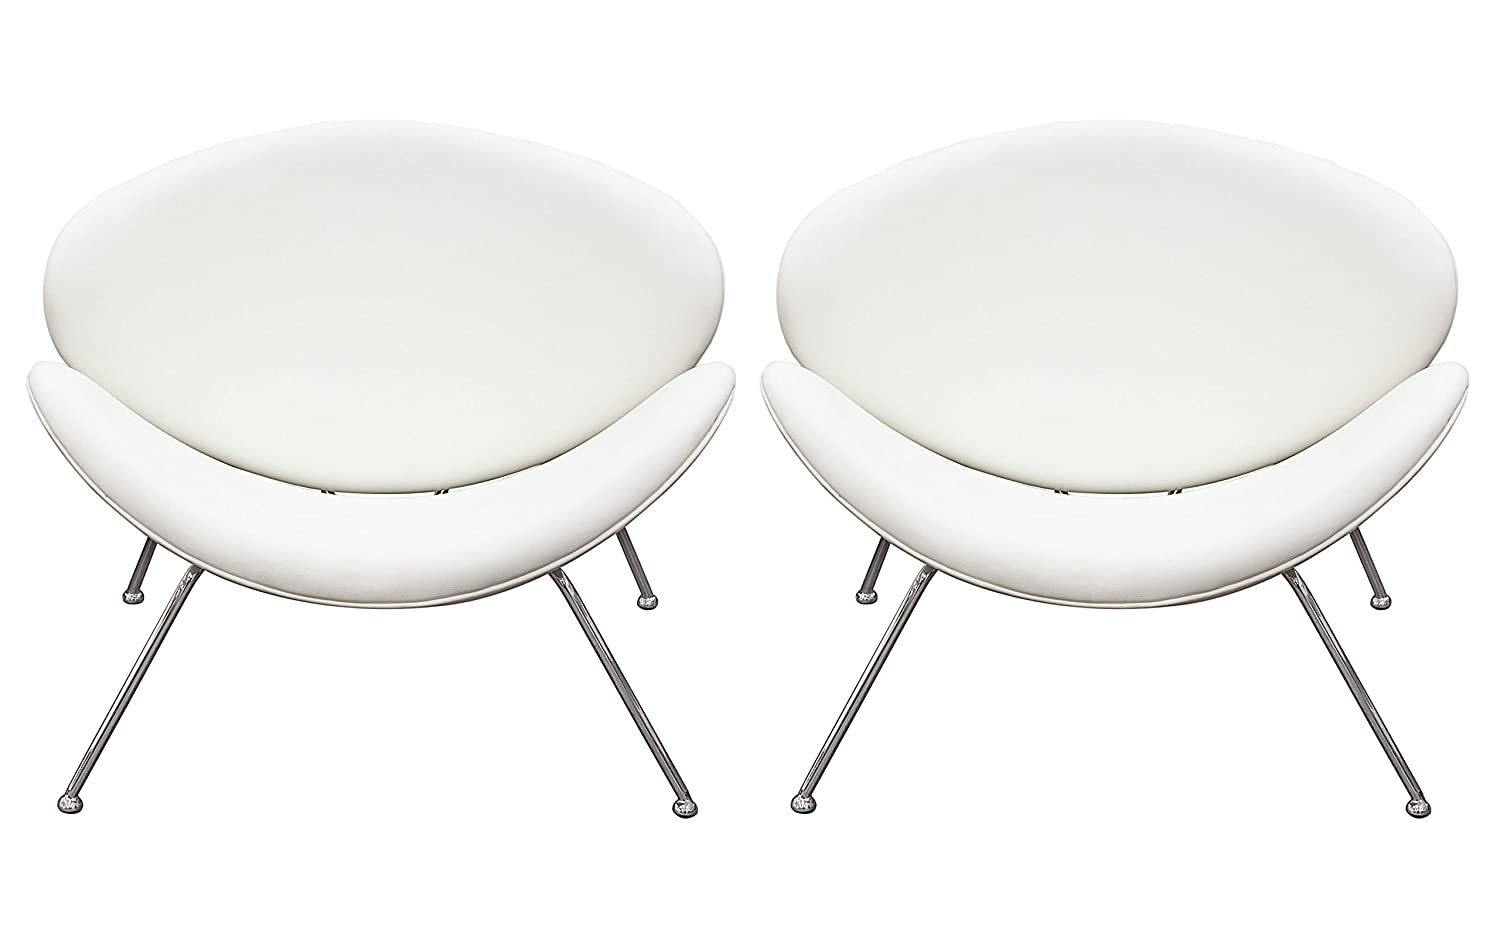 Superb Amazon Com Set Of 2 Roxy White Accent Chair With Chrome Ibusinesslaw Wood Chair Design Ideas Ibusinesslaworg